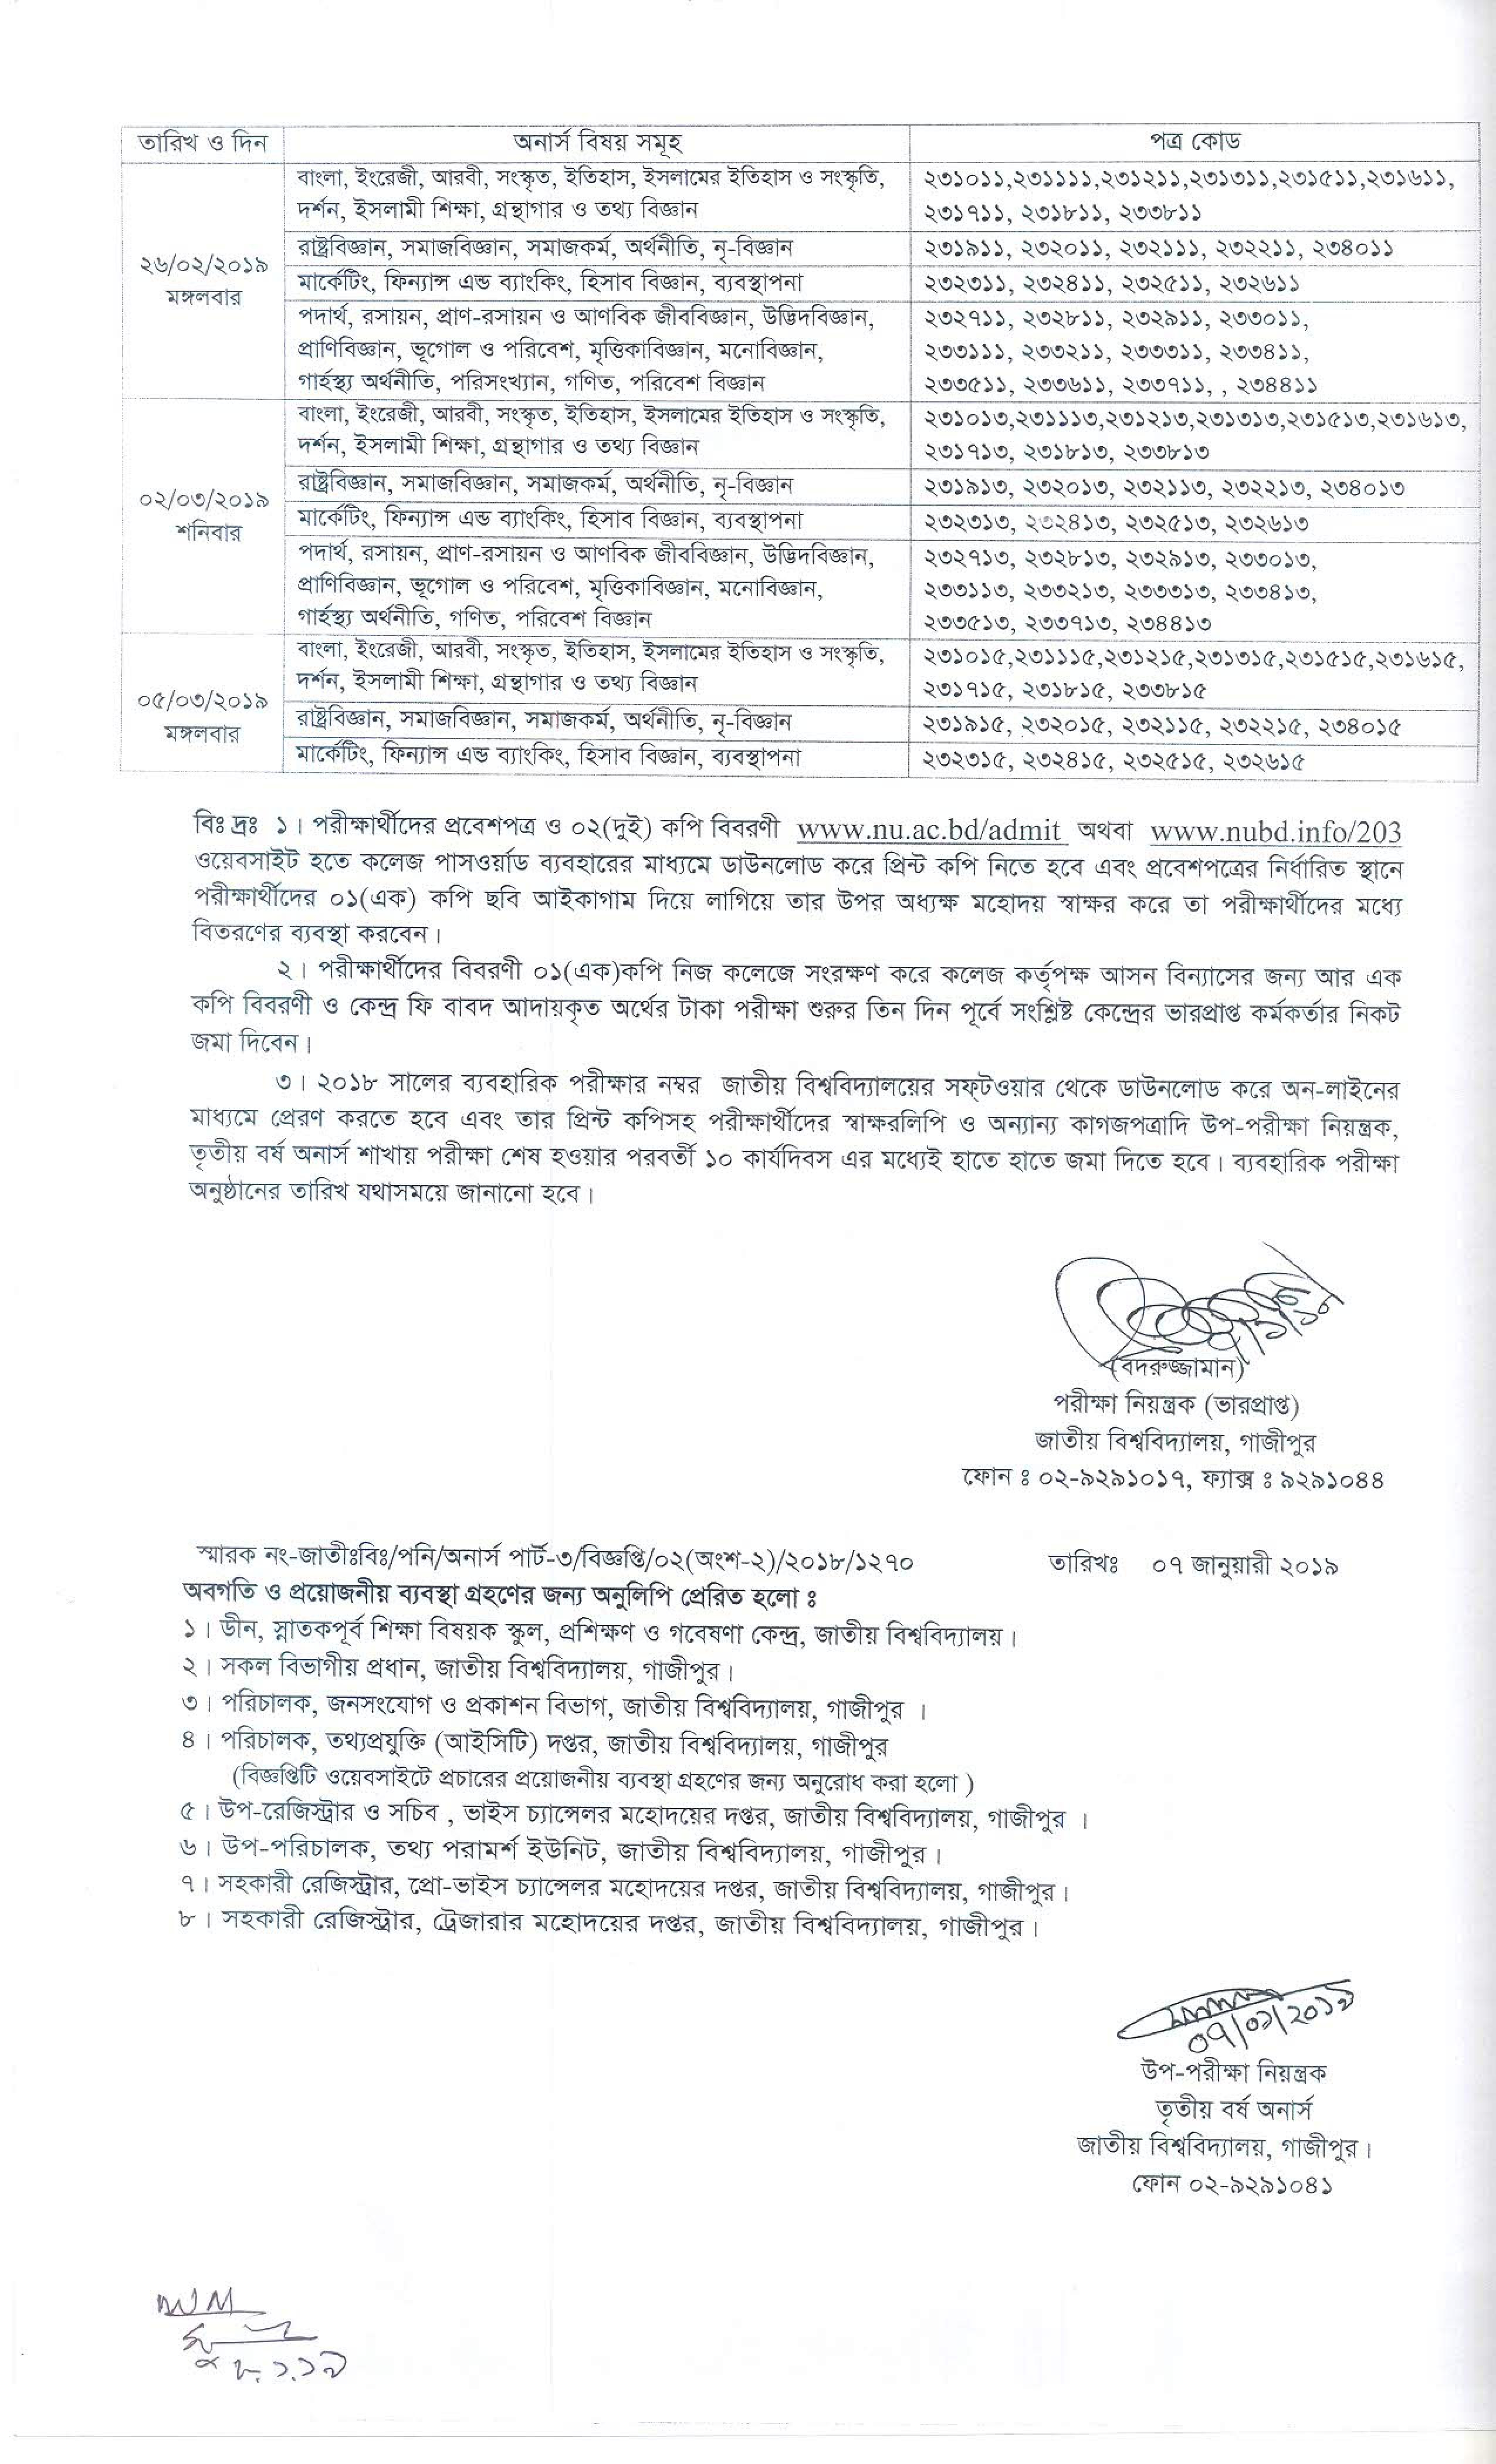 National University Honours 3rd Year Exam Routine 2018